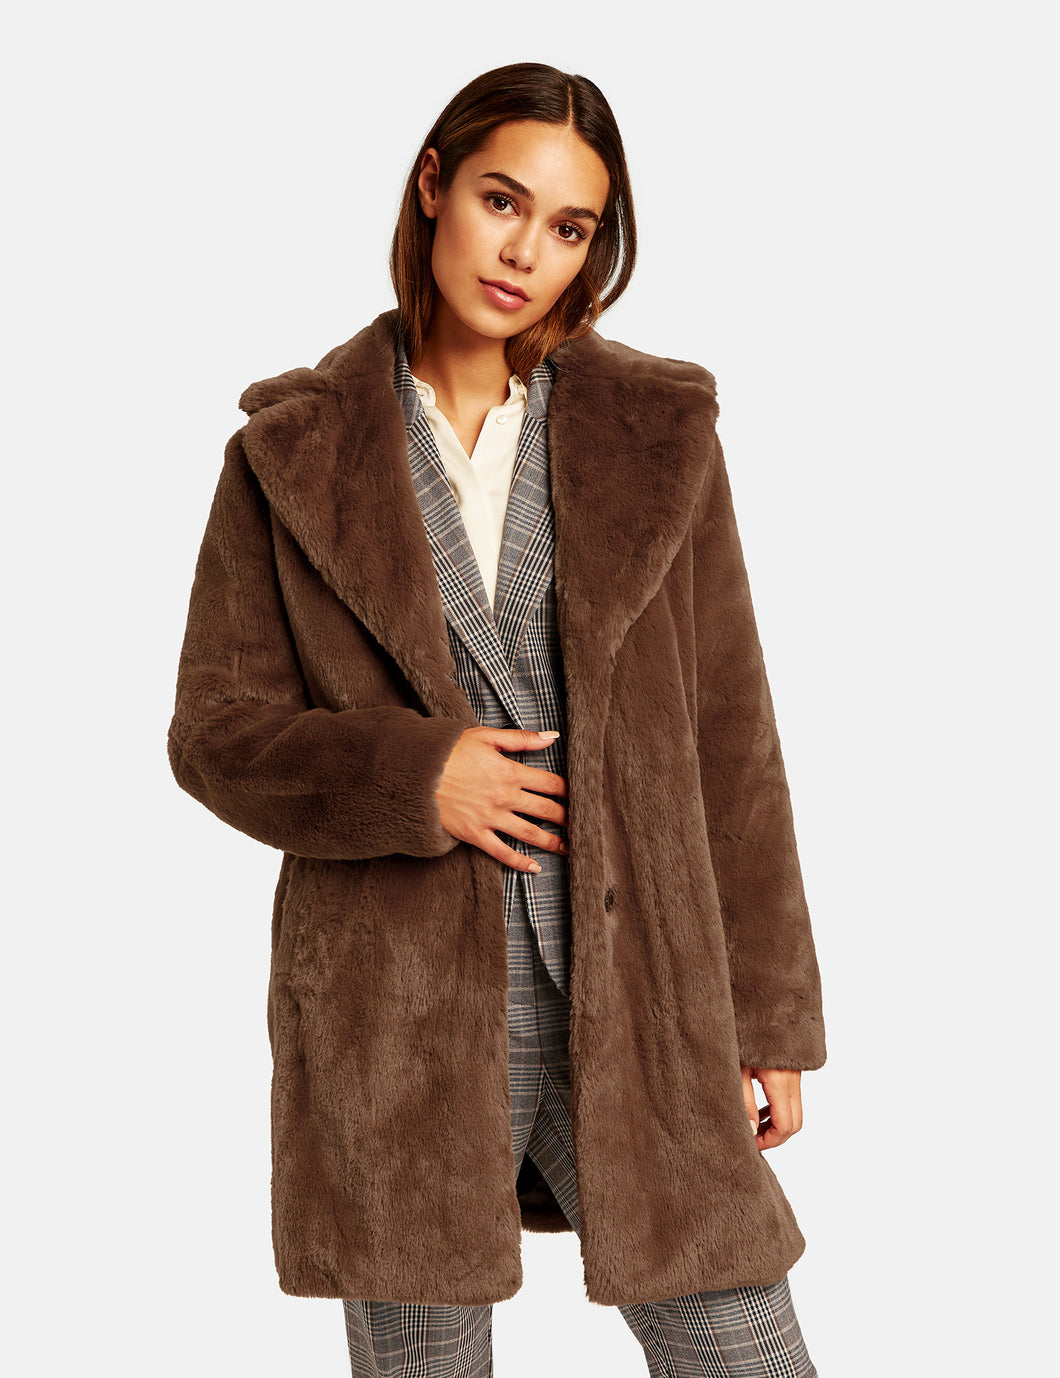 SHORT COAT MADE OF SOFT FAUX FUR